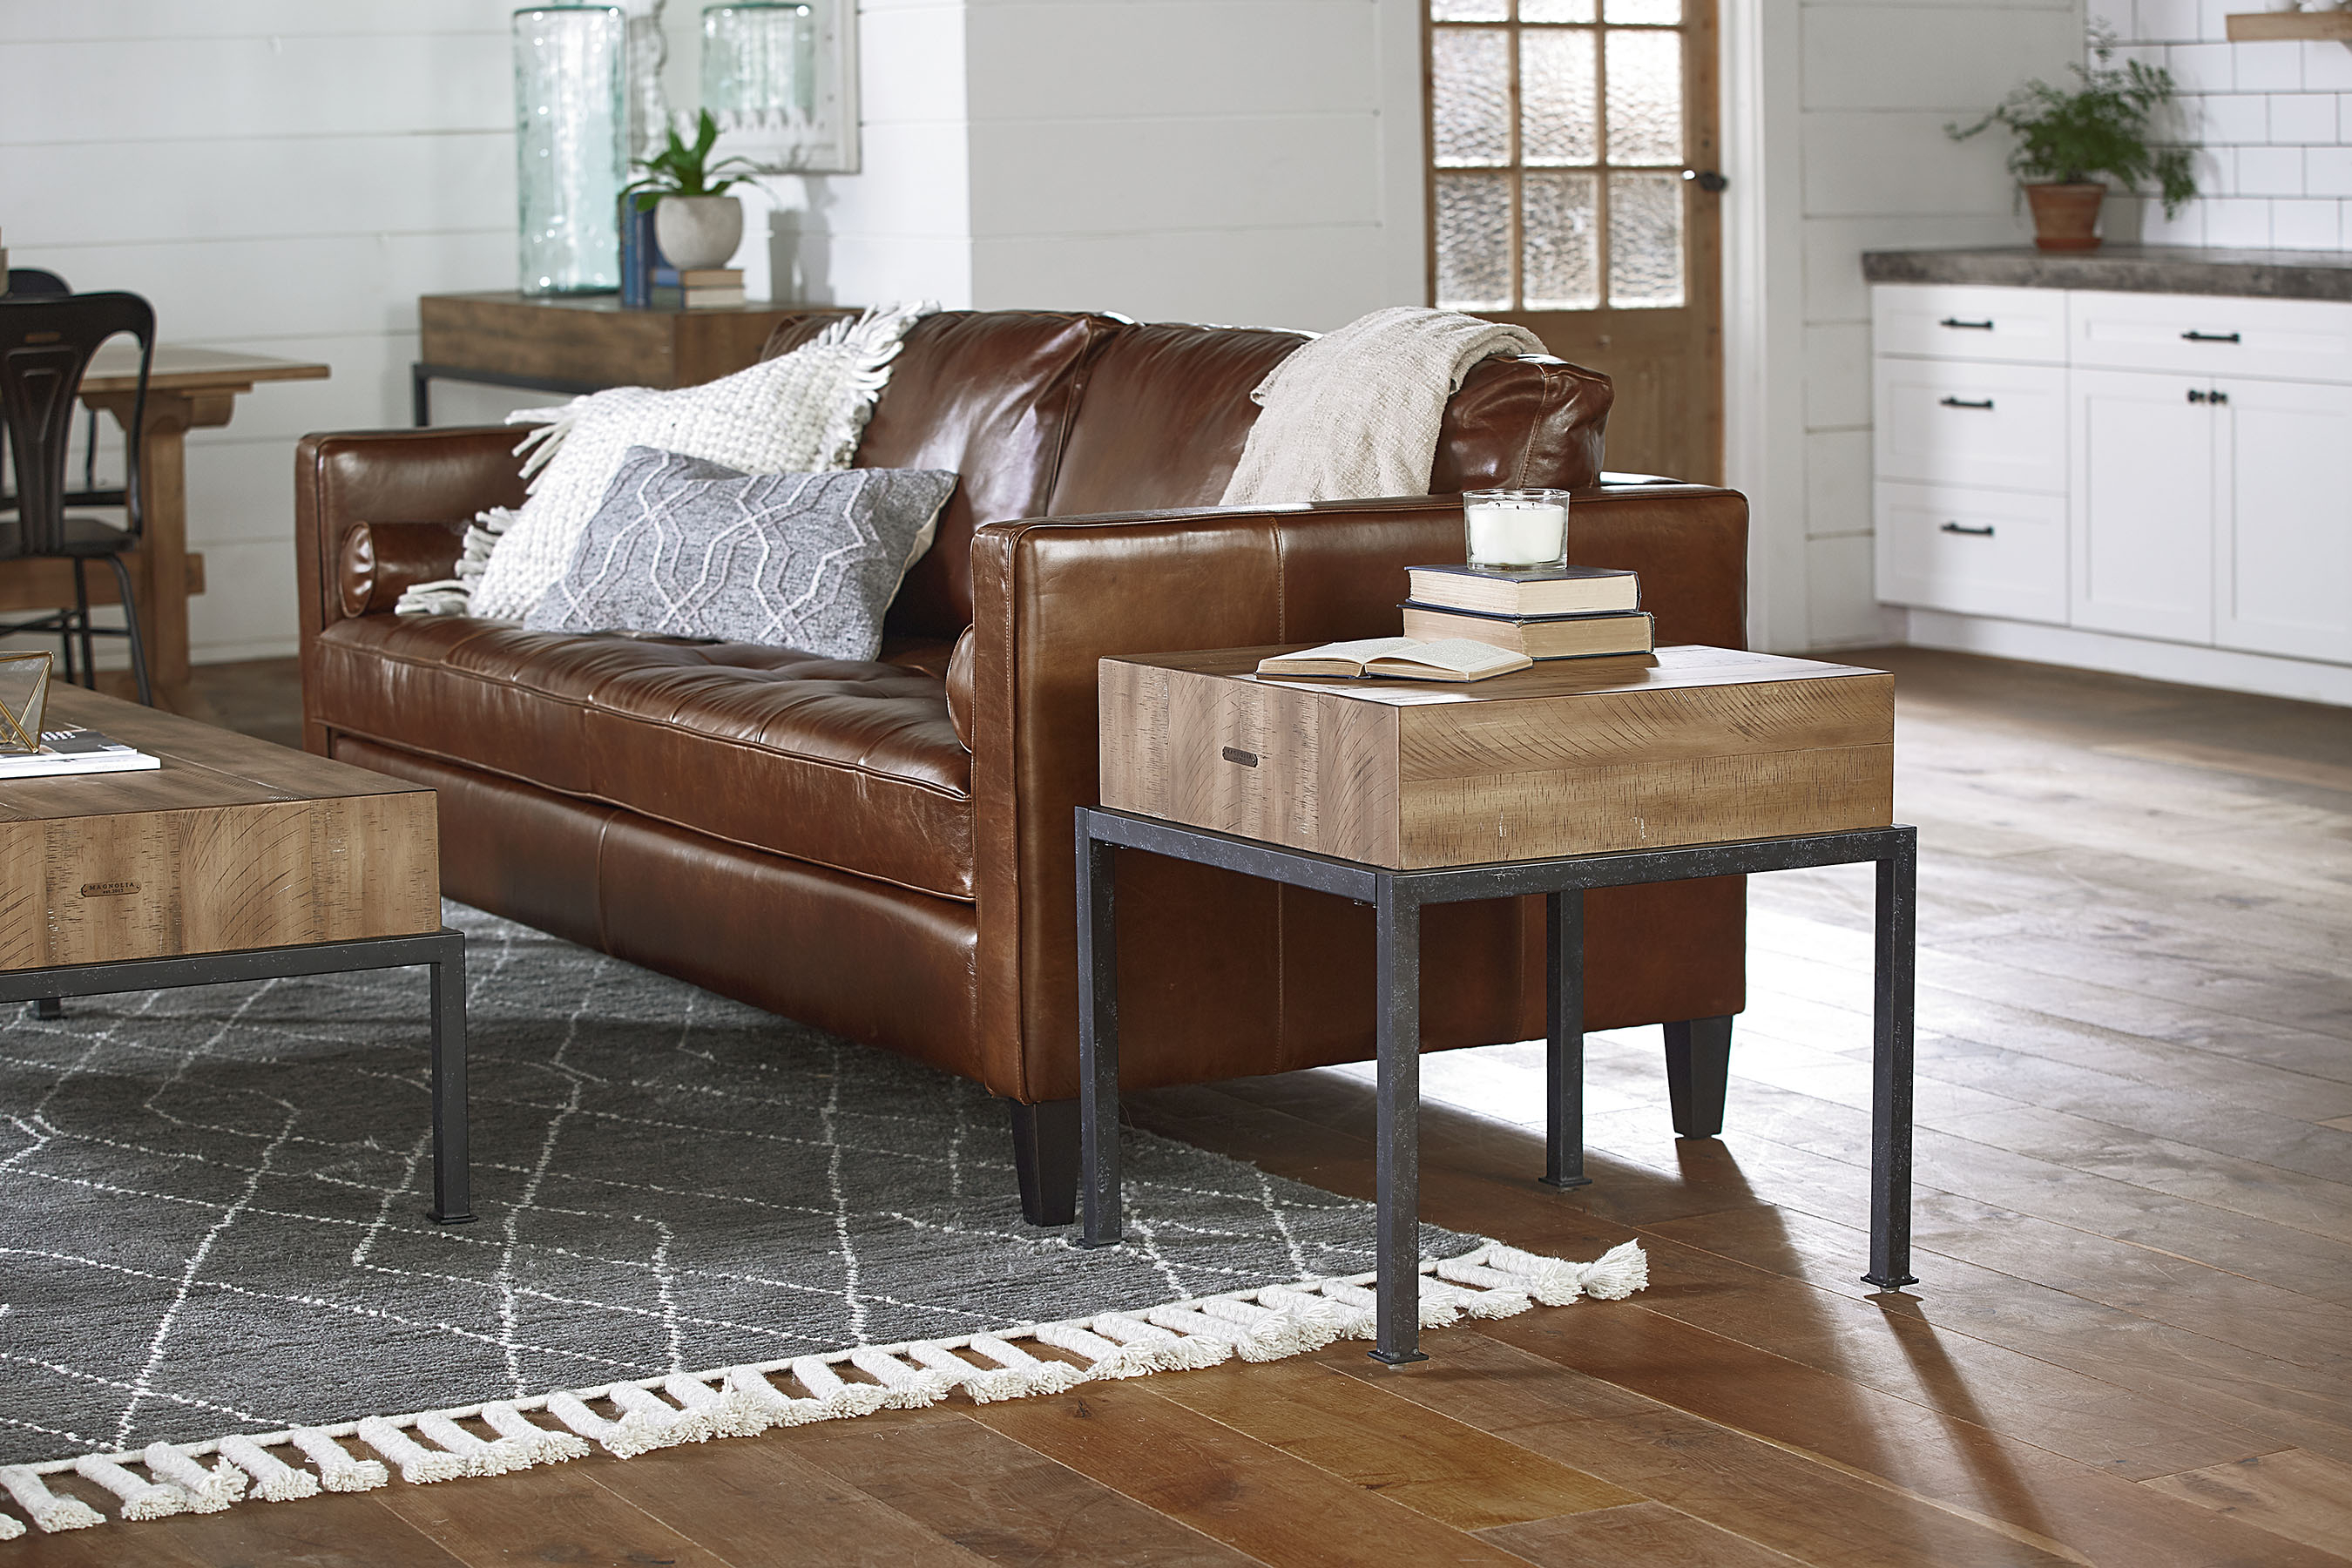 Dapper Sofa – Magnolia Home Inside Magnolia Home Dapper Fog Sofa Chairs (View 16 of 20)